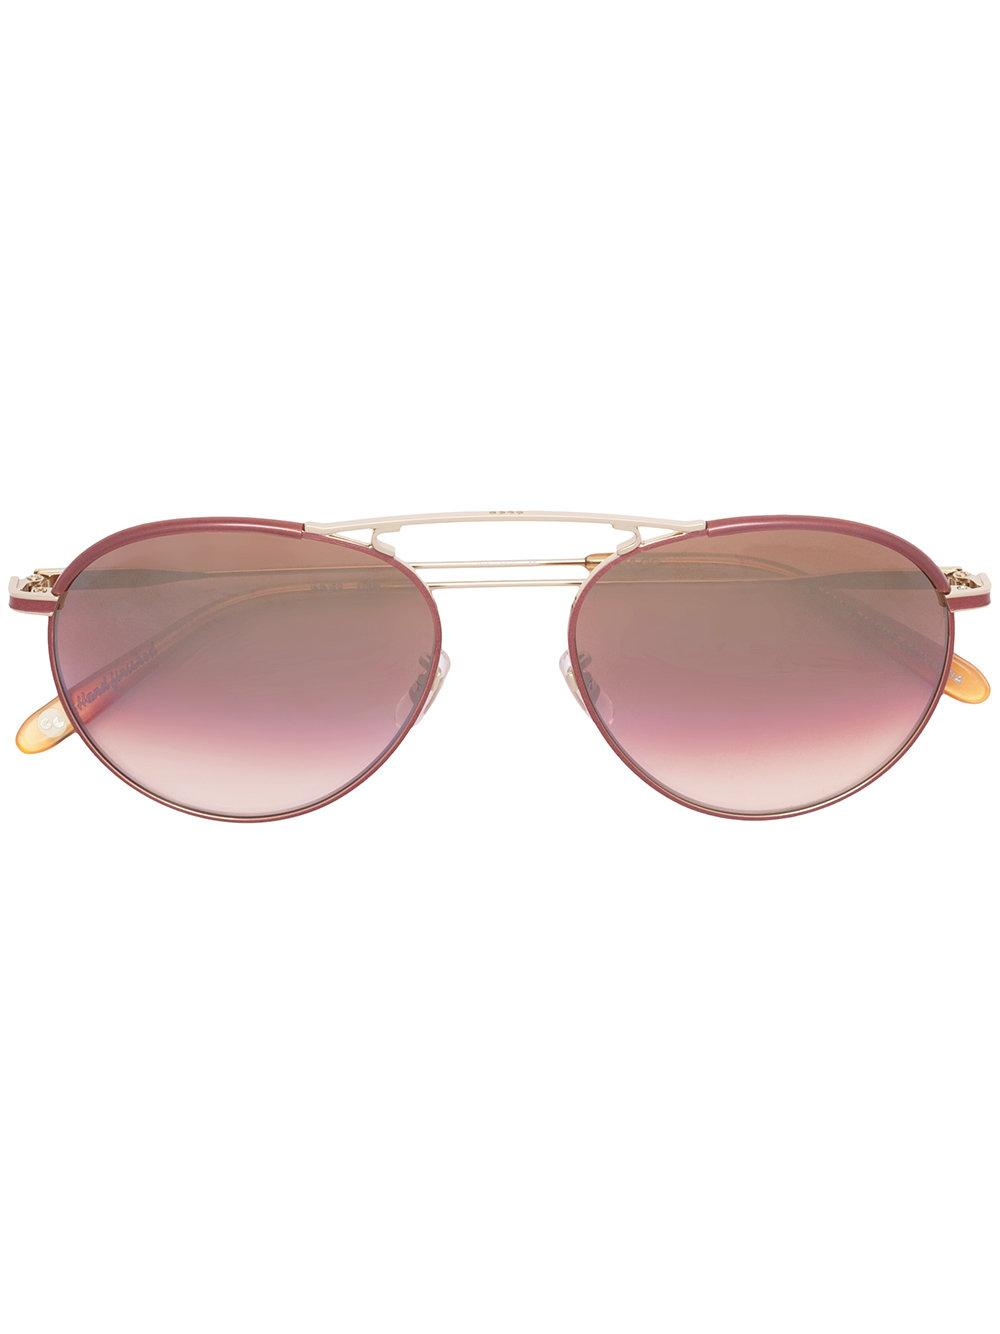 c031c46831 Ray Ban Deals 10463 « One More Soul